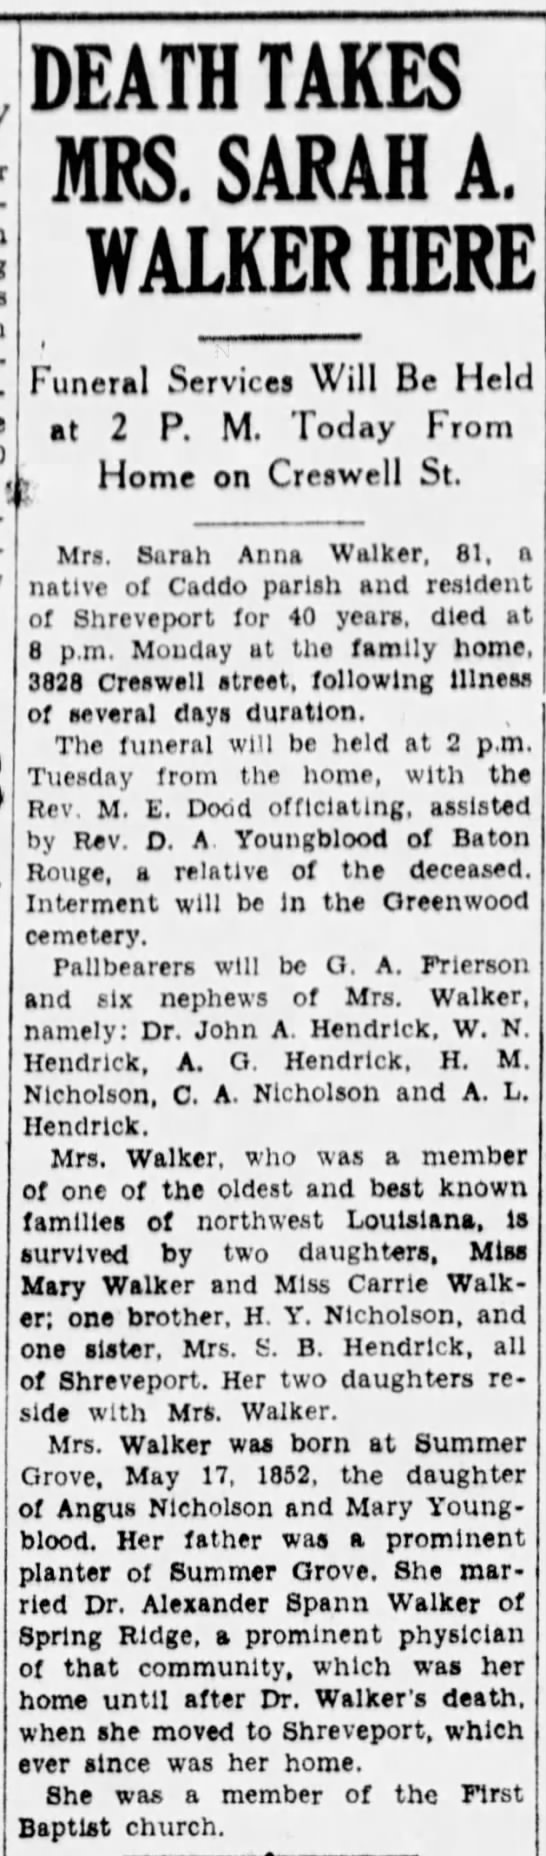 Death Takes Mrs. Sarah A. Walker Here, Sarah Anna Walker, Widow of Dr. Alexander Spann Walker - DEATH TAKES MRS. SARAH A. WALKER HERE Funeral...